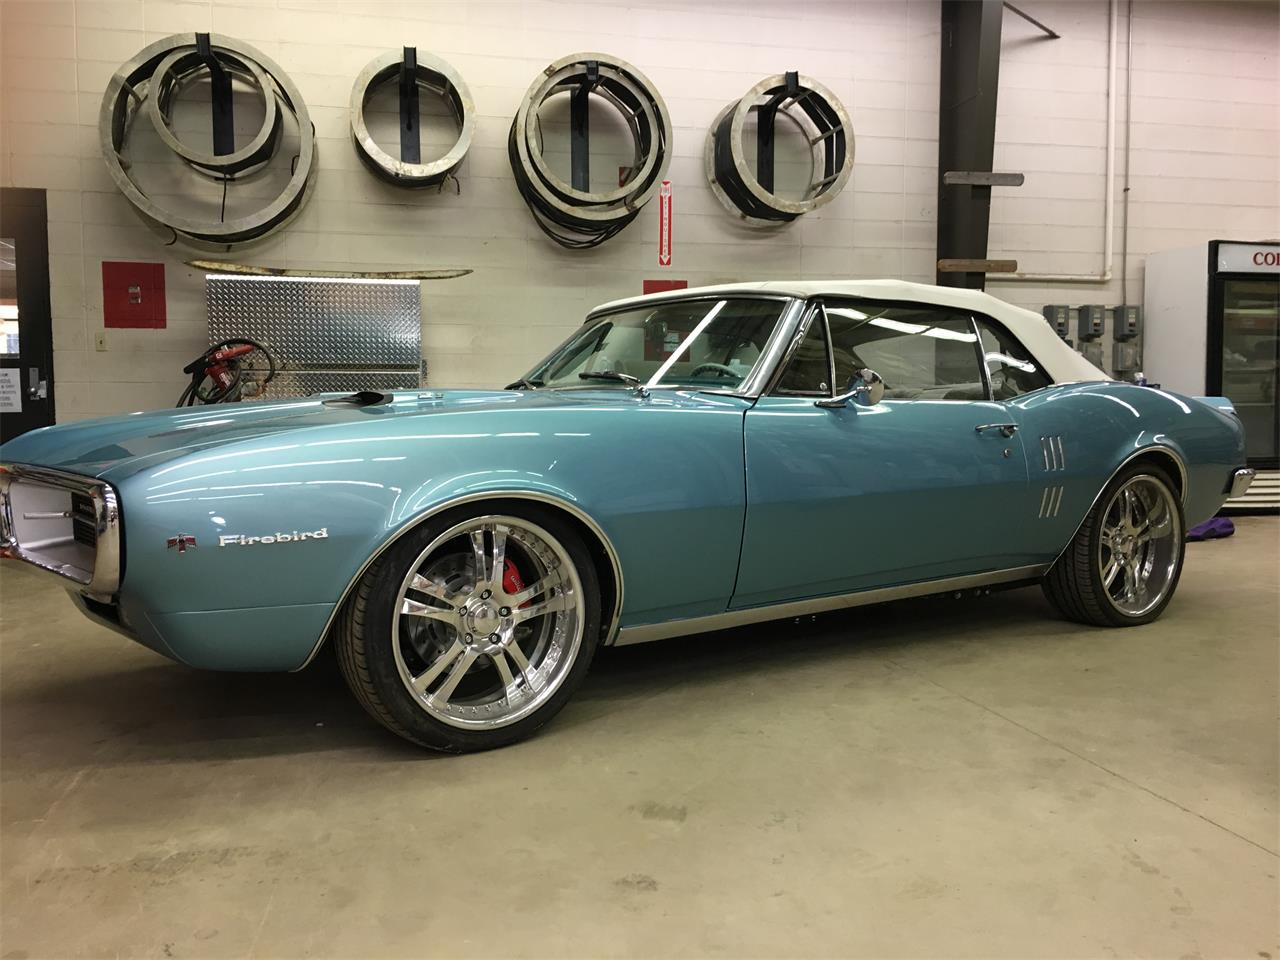 Large Picture of Classic '67 Firebird - $87,480.00 Offered by a Private Seller - MYXI